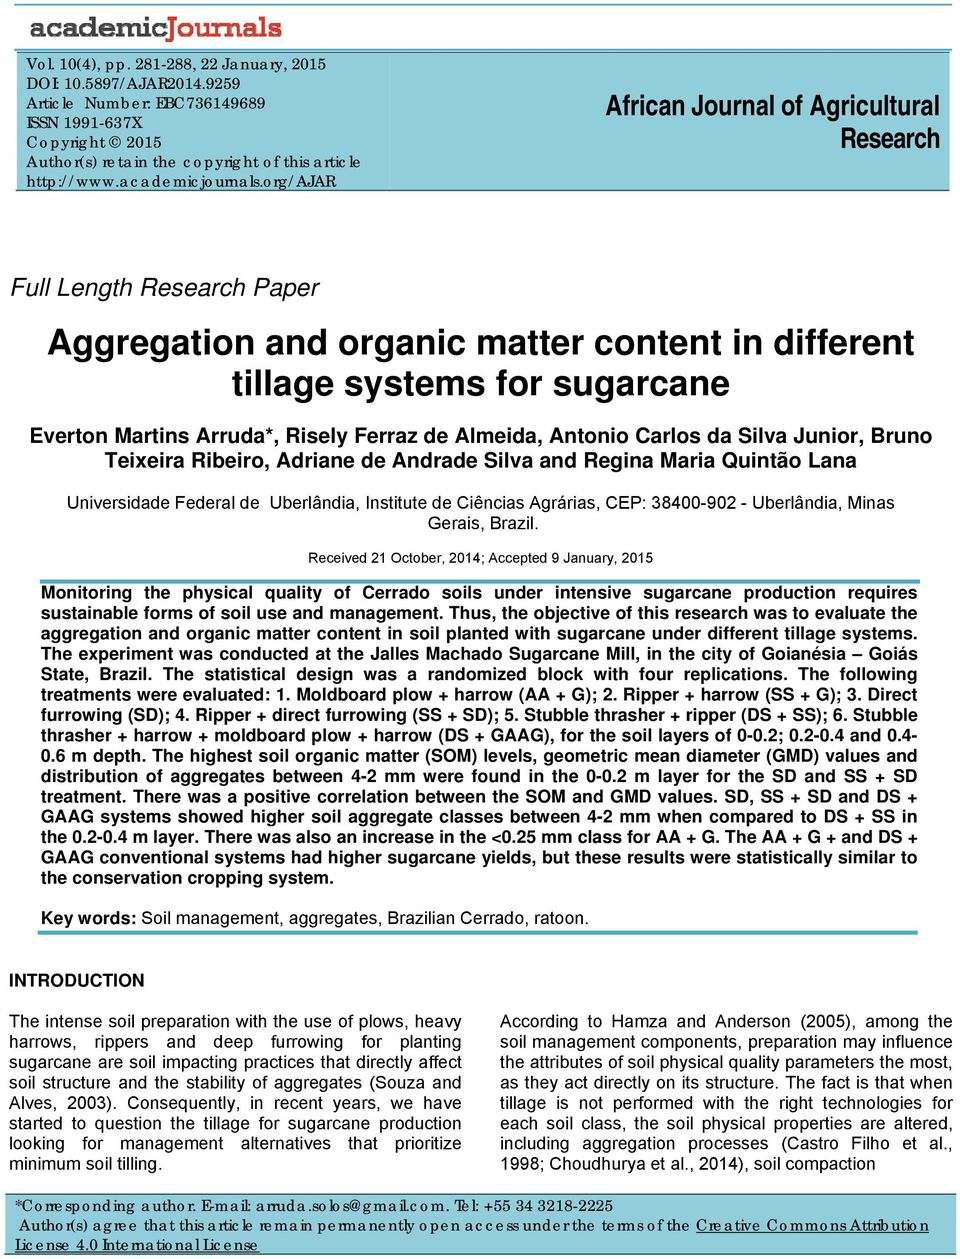 org/ajar African Journal of Agricultural Research Full Length Research Paper Aggregation and organic matter content in different tillage systems for sugarcane Everton Martins Arruda*, Risely Ferraz